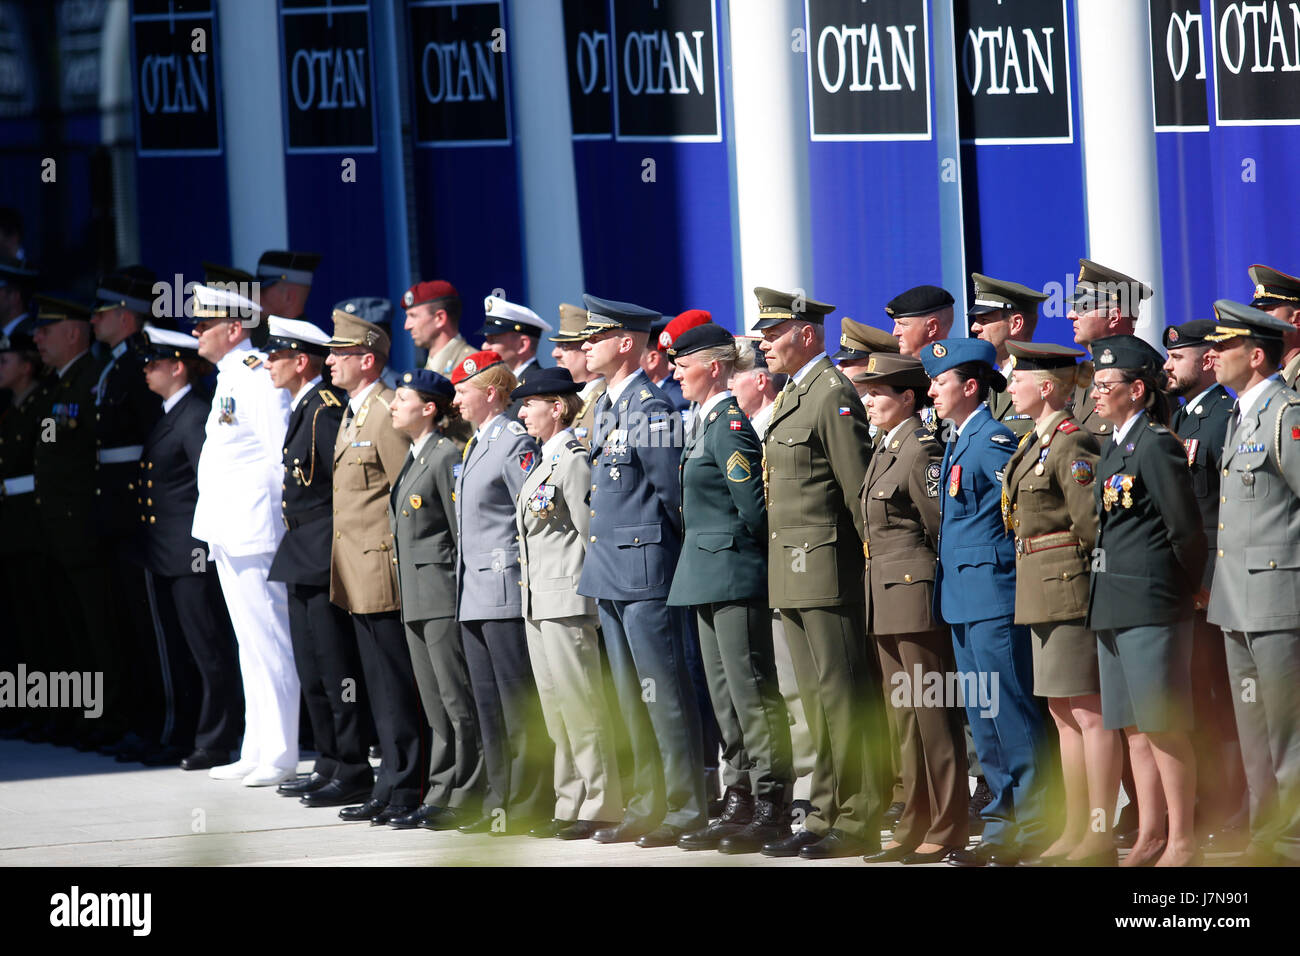 Brussels, Belgium. 25th May, 2017. Soldiers stand by at the handover ceremony of the new NATO headquarters during - Stock Image